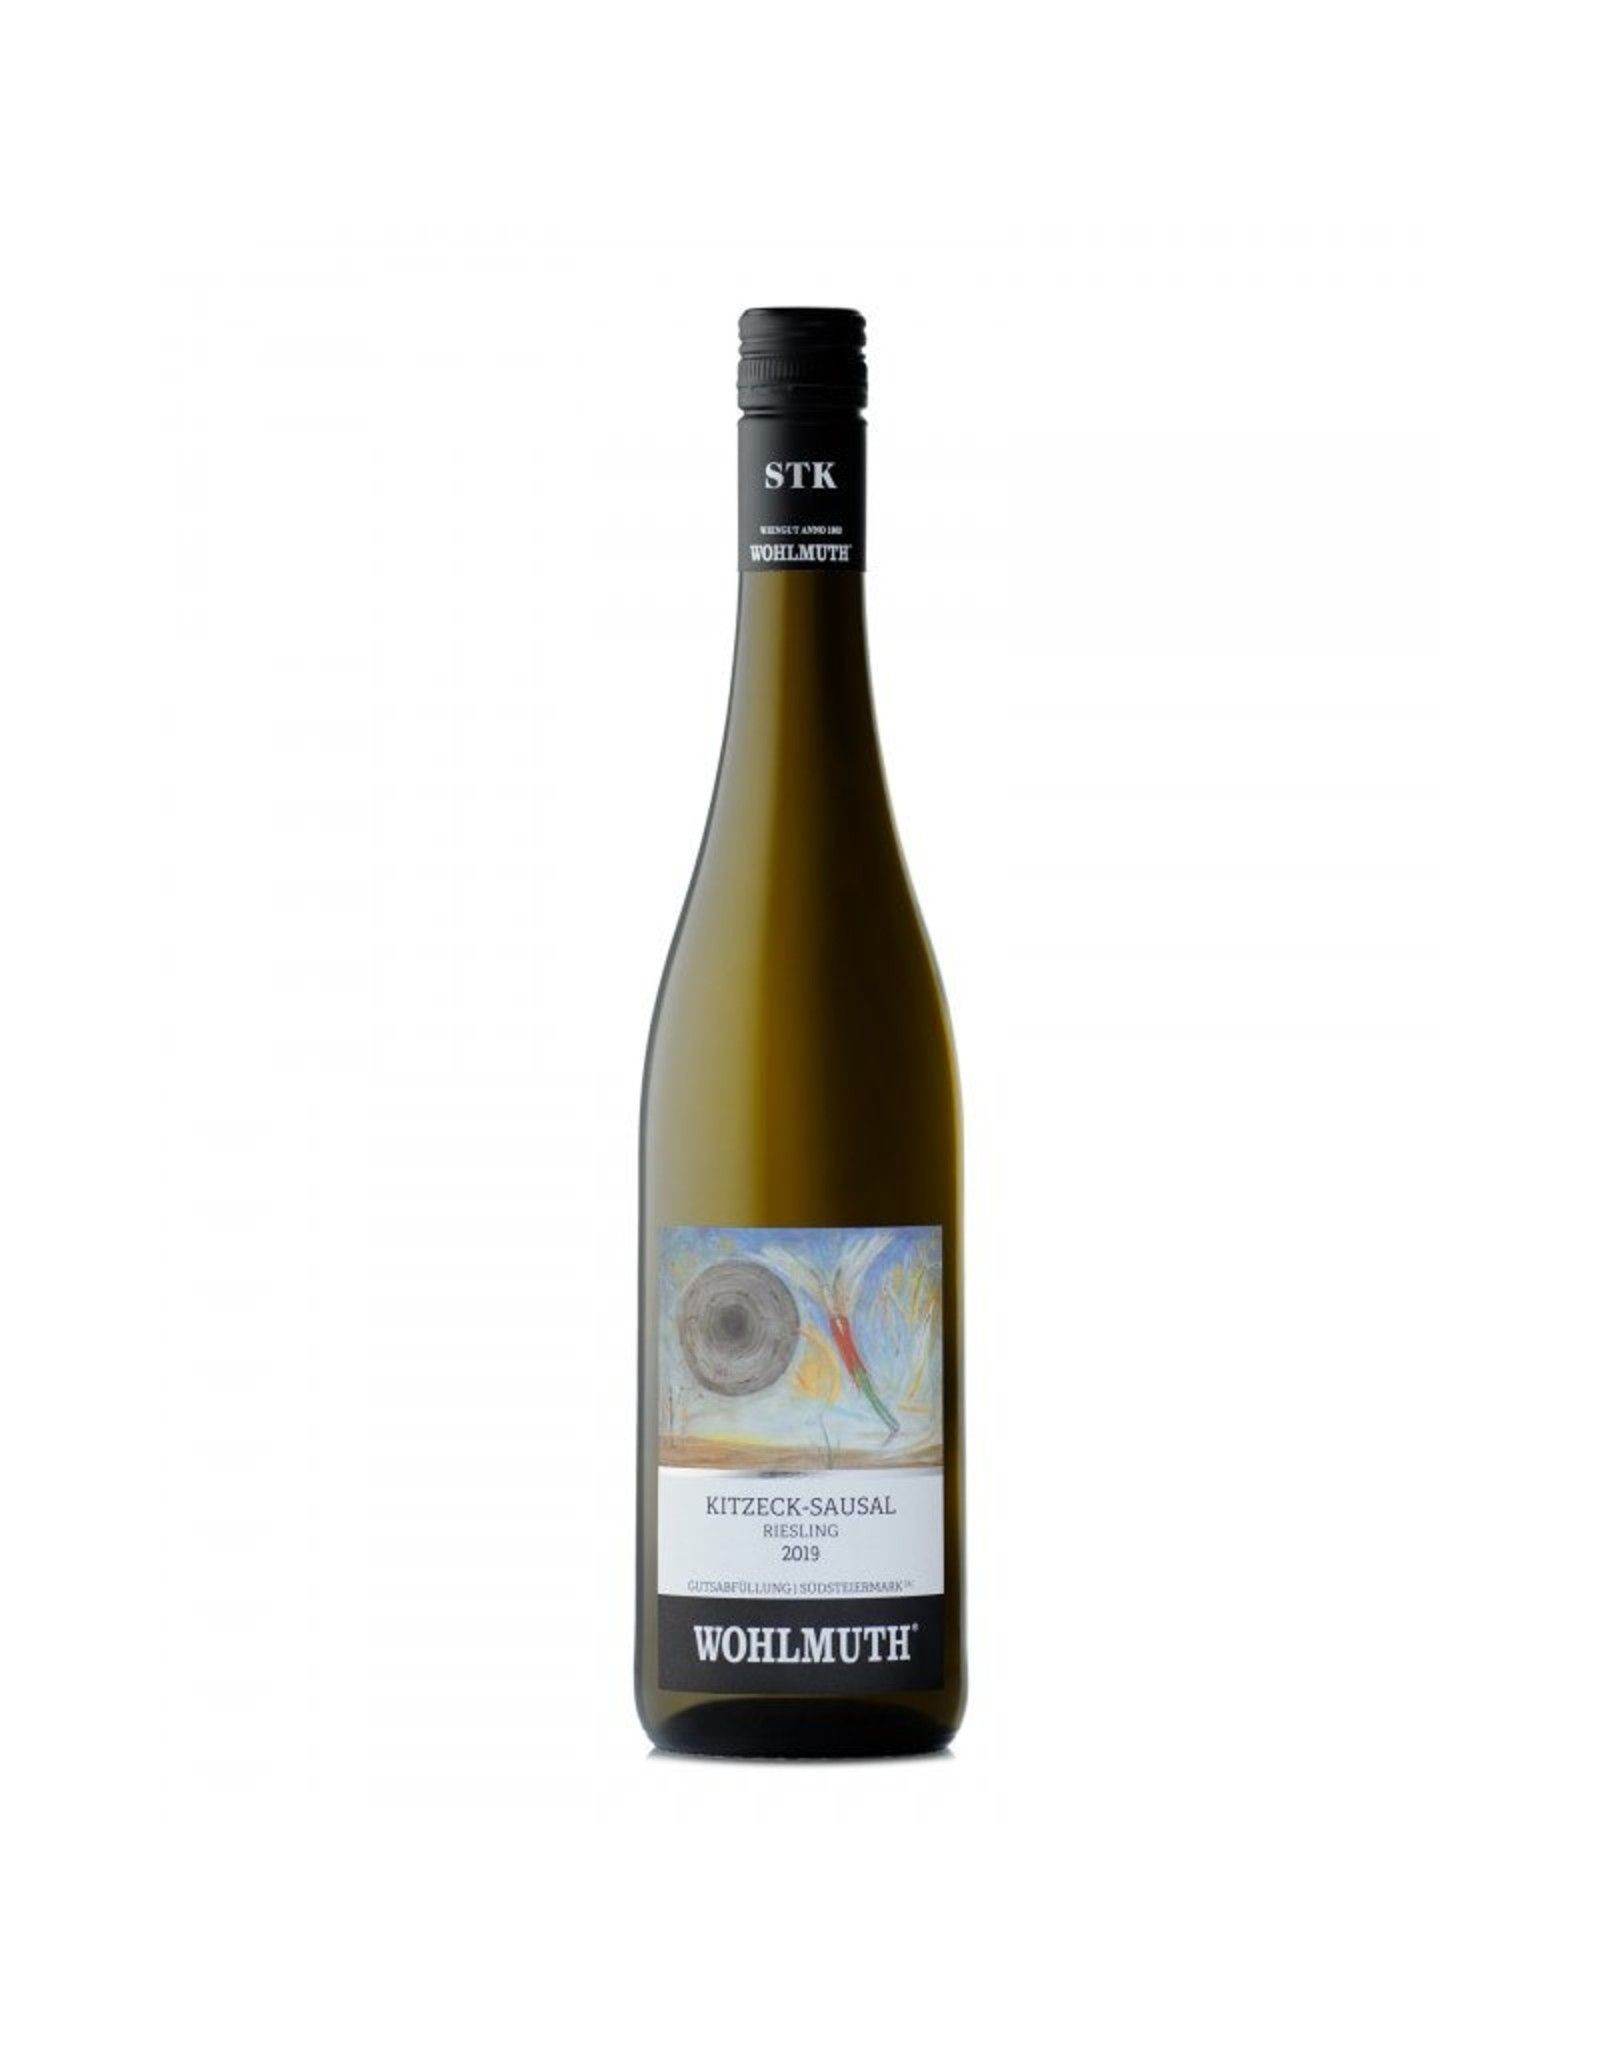 Wohlmuth Riesling Kitzeck-Sausal